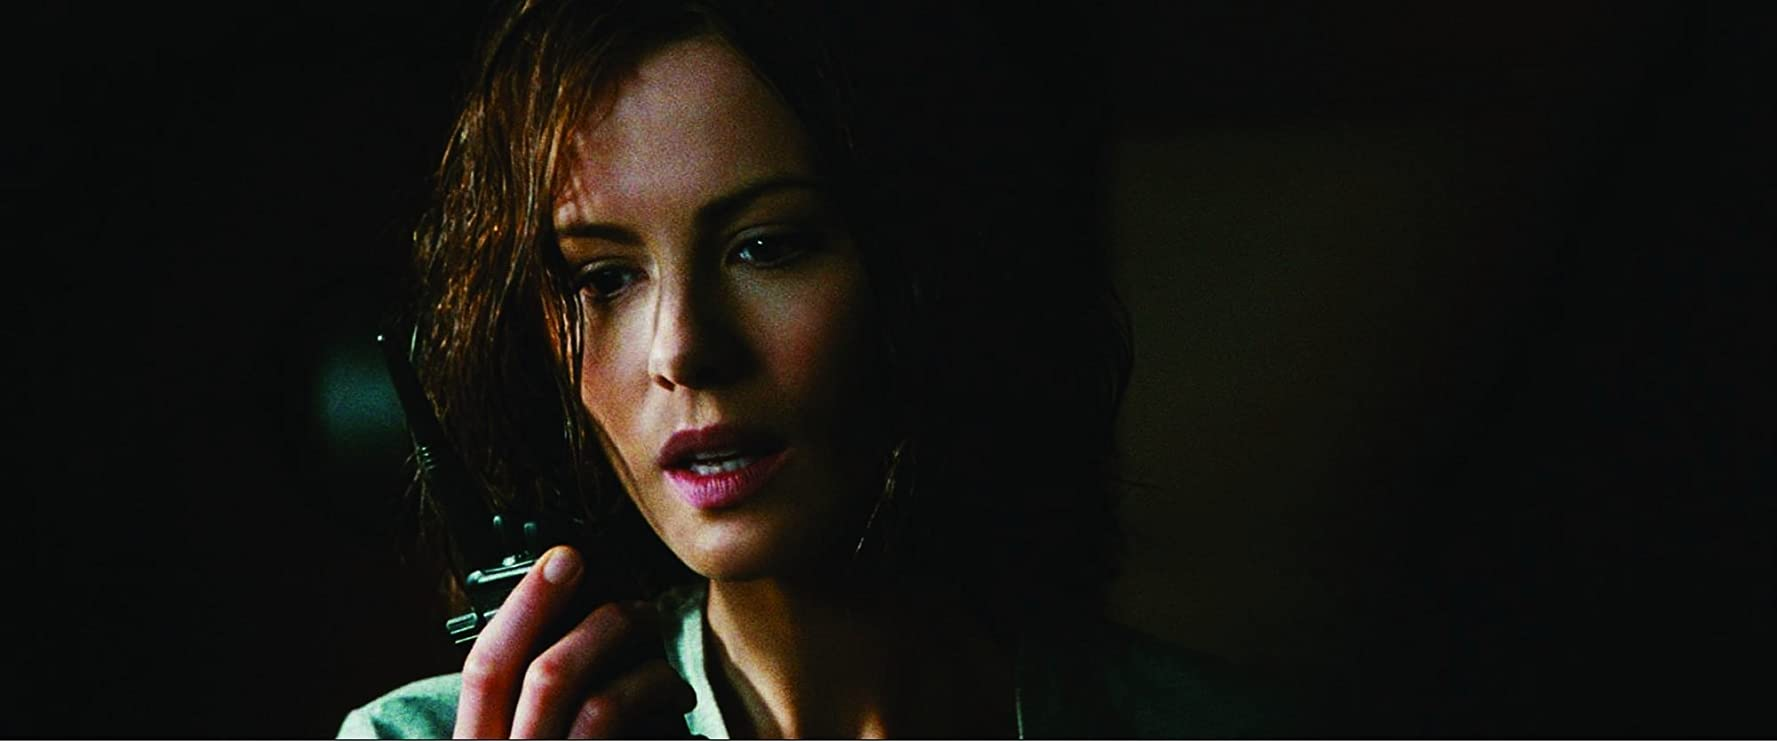 Kate Beckinsale in Whiteout (2009)